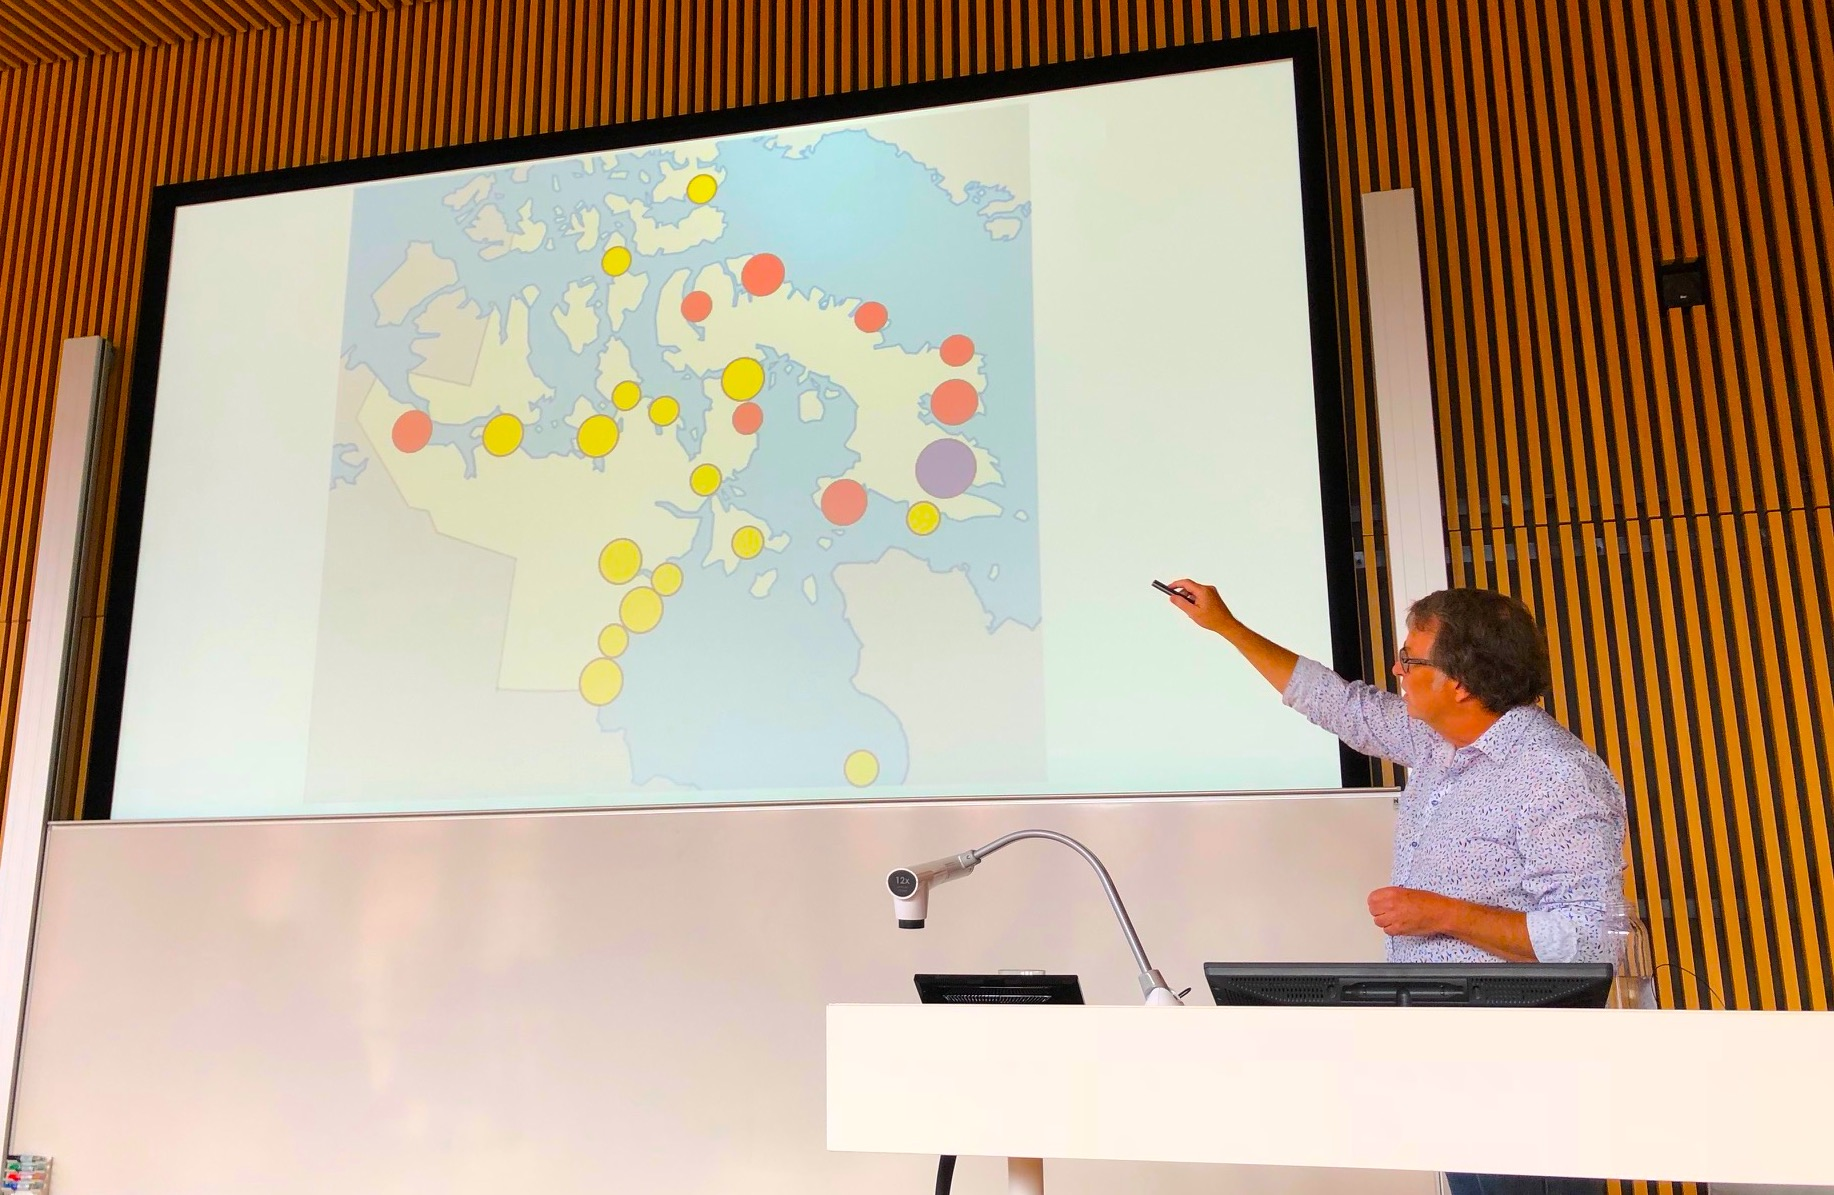 Researcher Jack Hicks points at a map of Nunavut where red dots show the communities where suicides have been more numerous. Hicks presented a new suicide prevention project at the International Congress of Circumpolar Health on Aug. 14 in Copenhagen. (PHOTO BY JANE GEORGE)